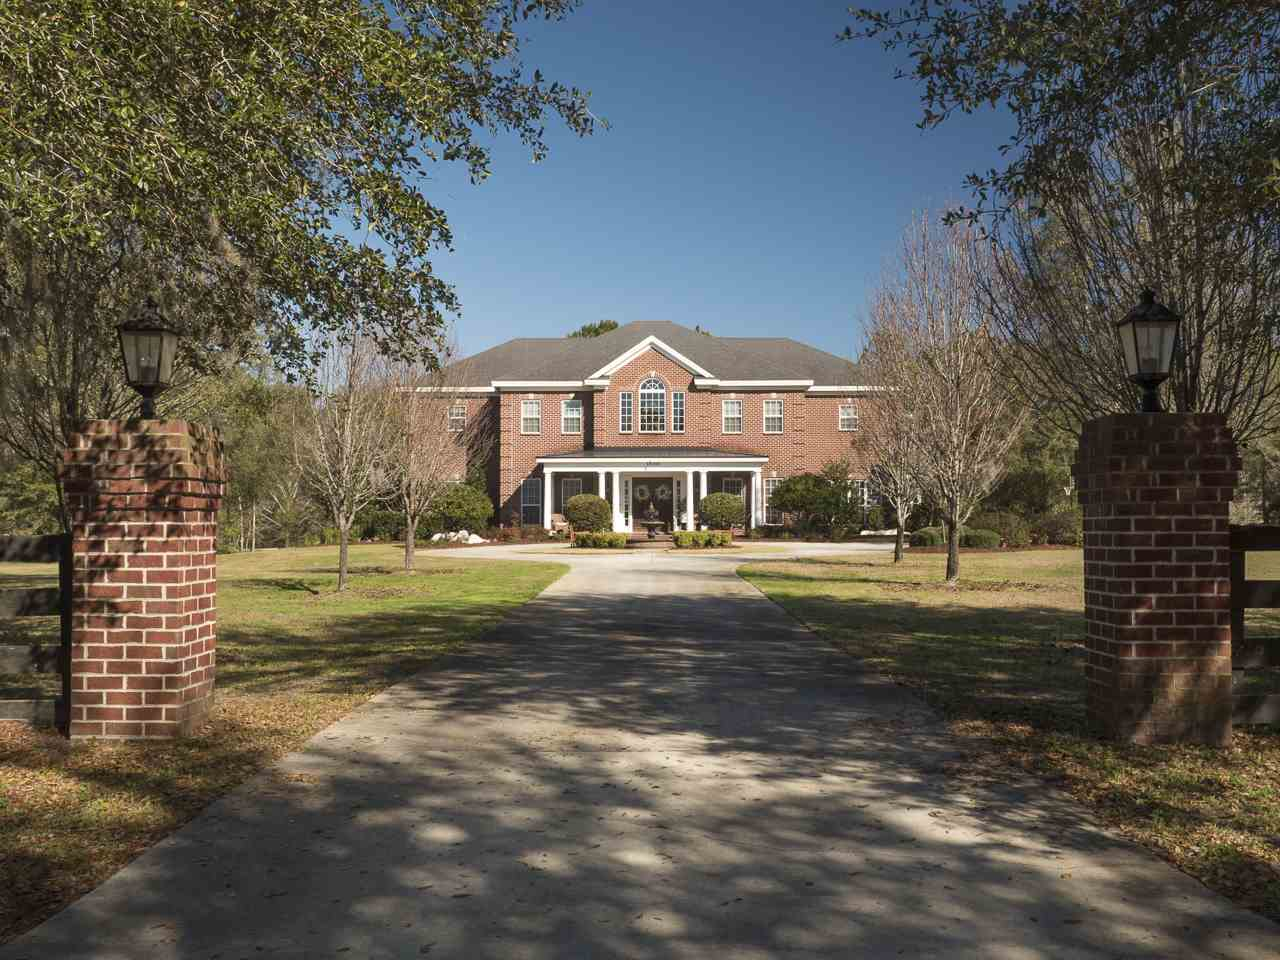 2 Story,Colonial, Detached - Gainesville, FL (photo 1)